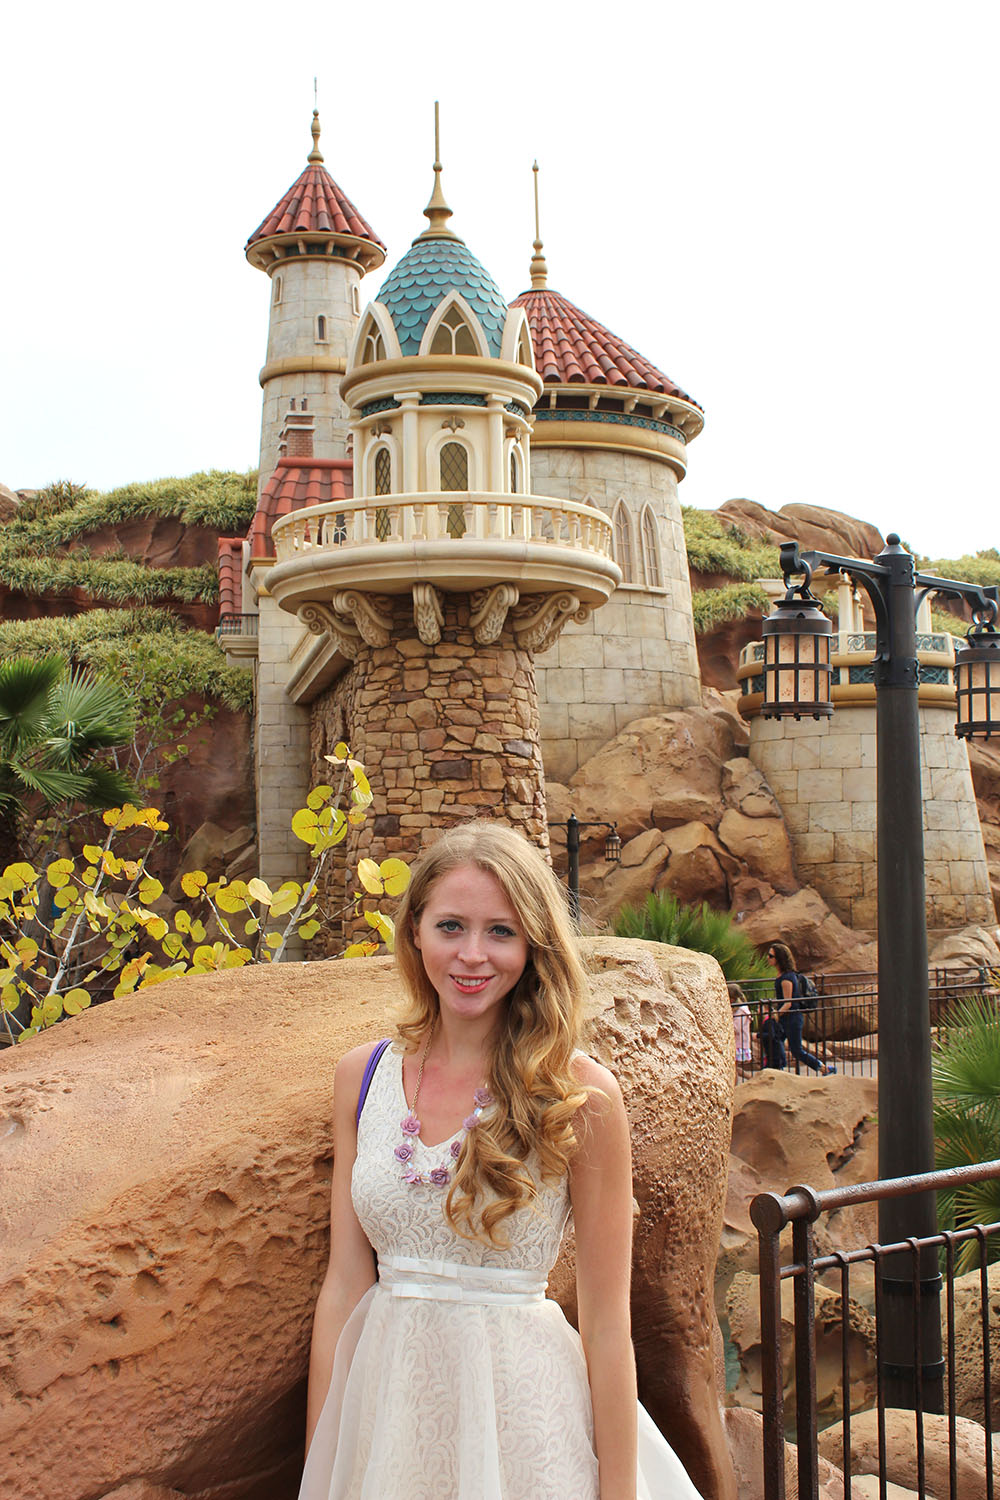 ariel castle new fantasyland